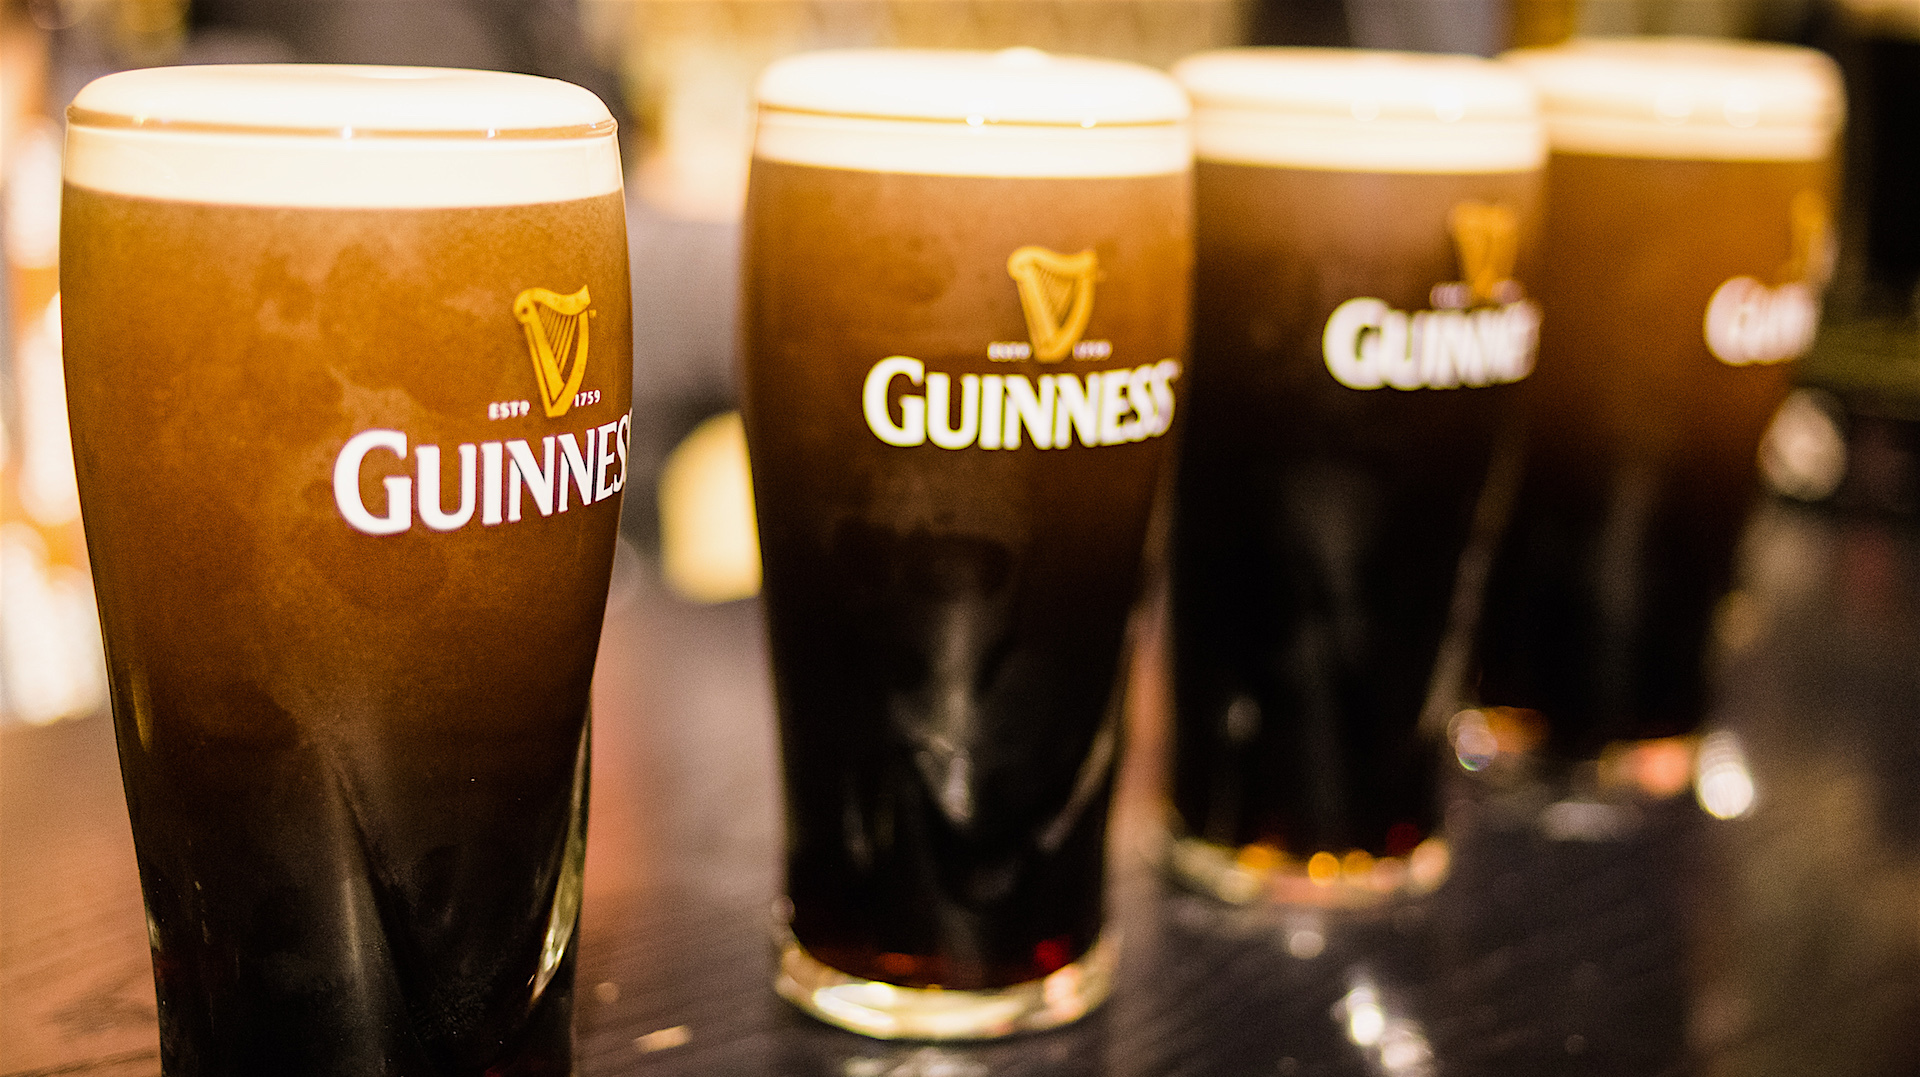 Where to celebrate St Patrick's Day 2017